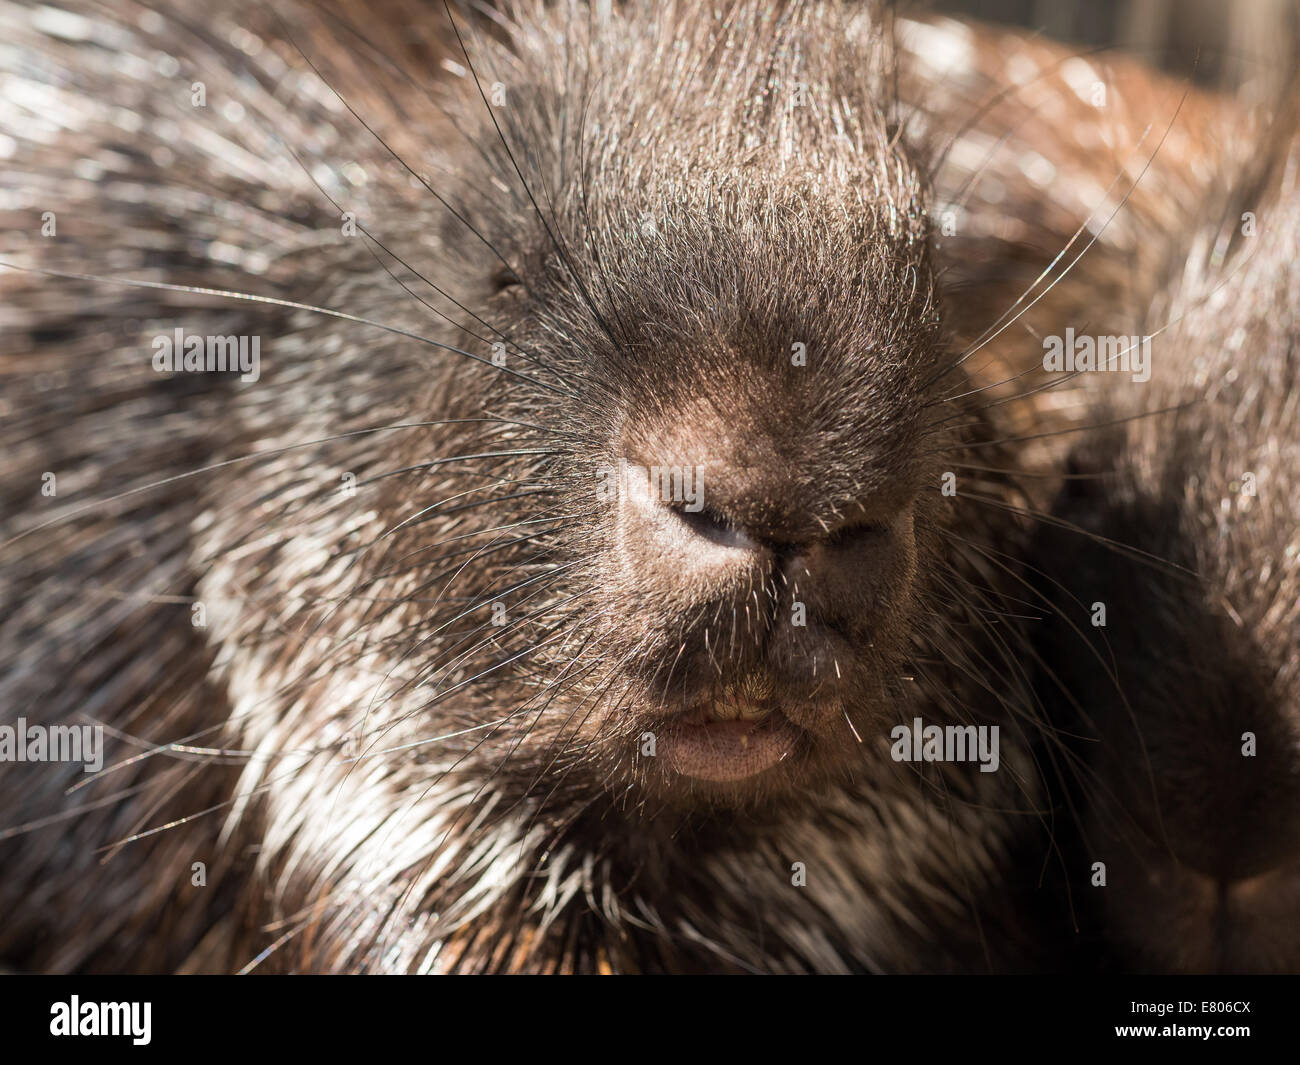 Closeup facial shot of the malayan porcupine - Stock Image